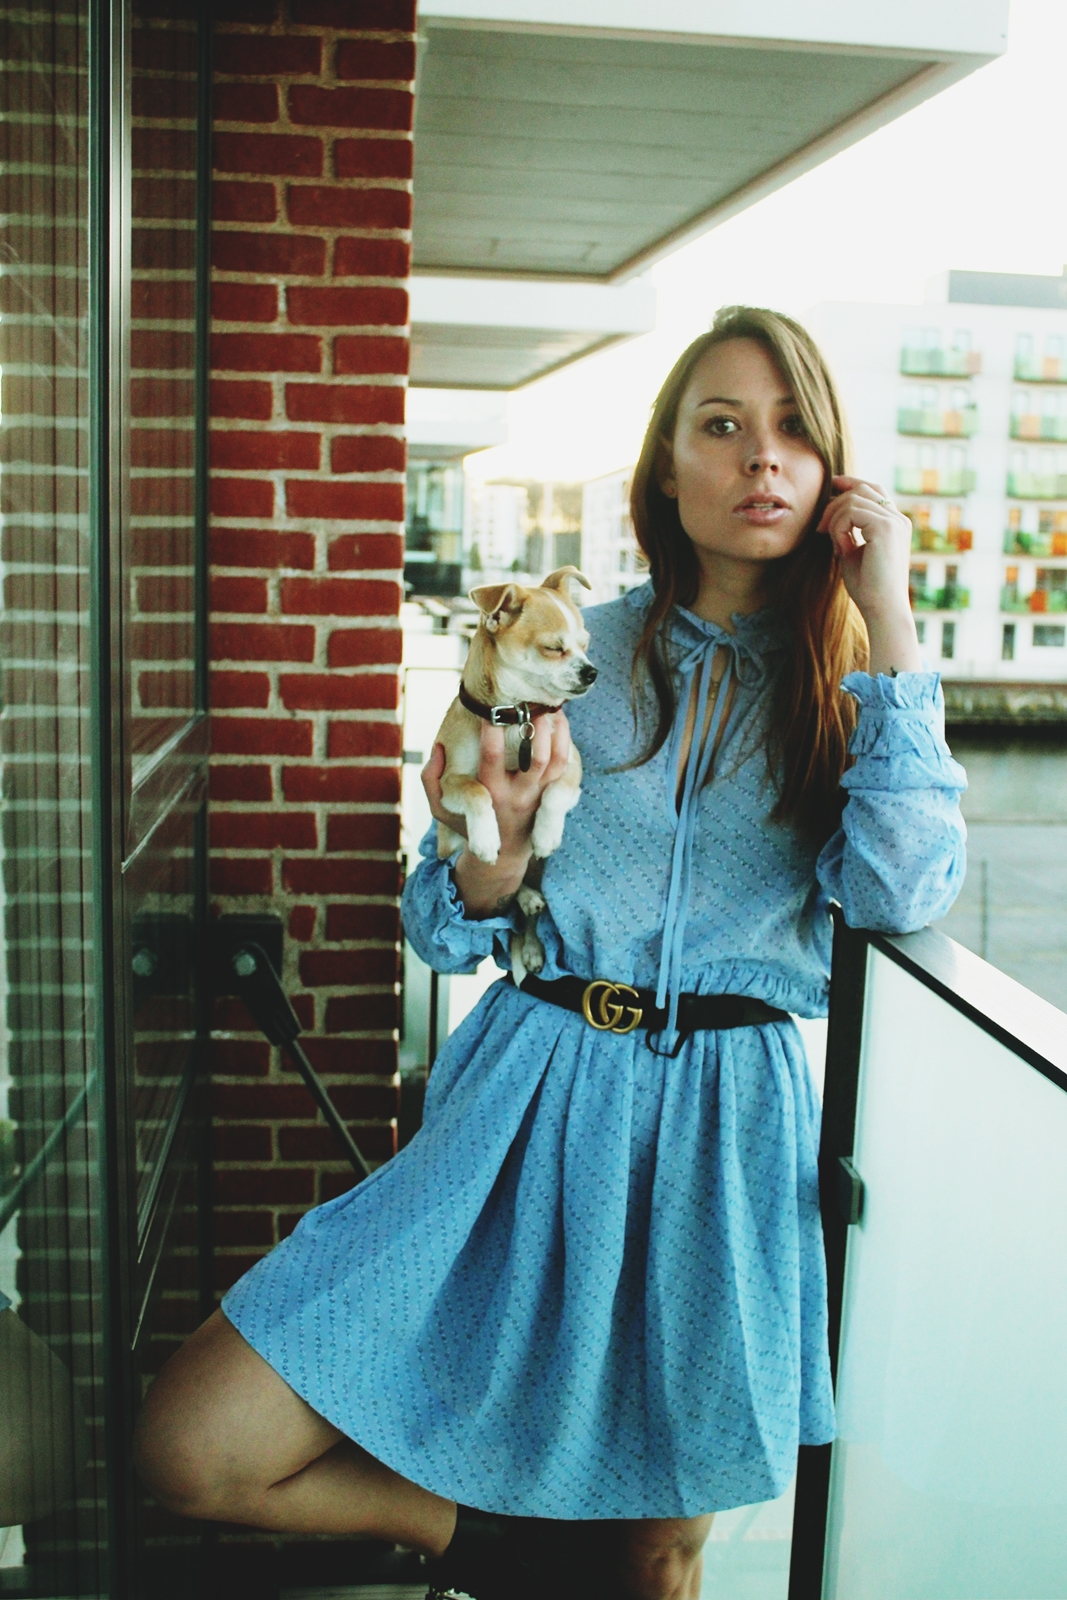 posing with dog in blue dress and combat boots